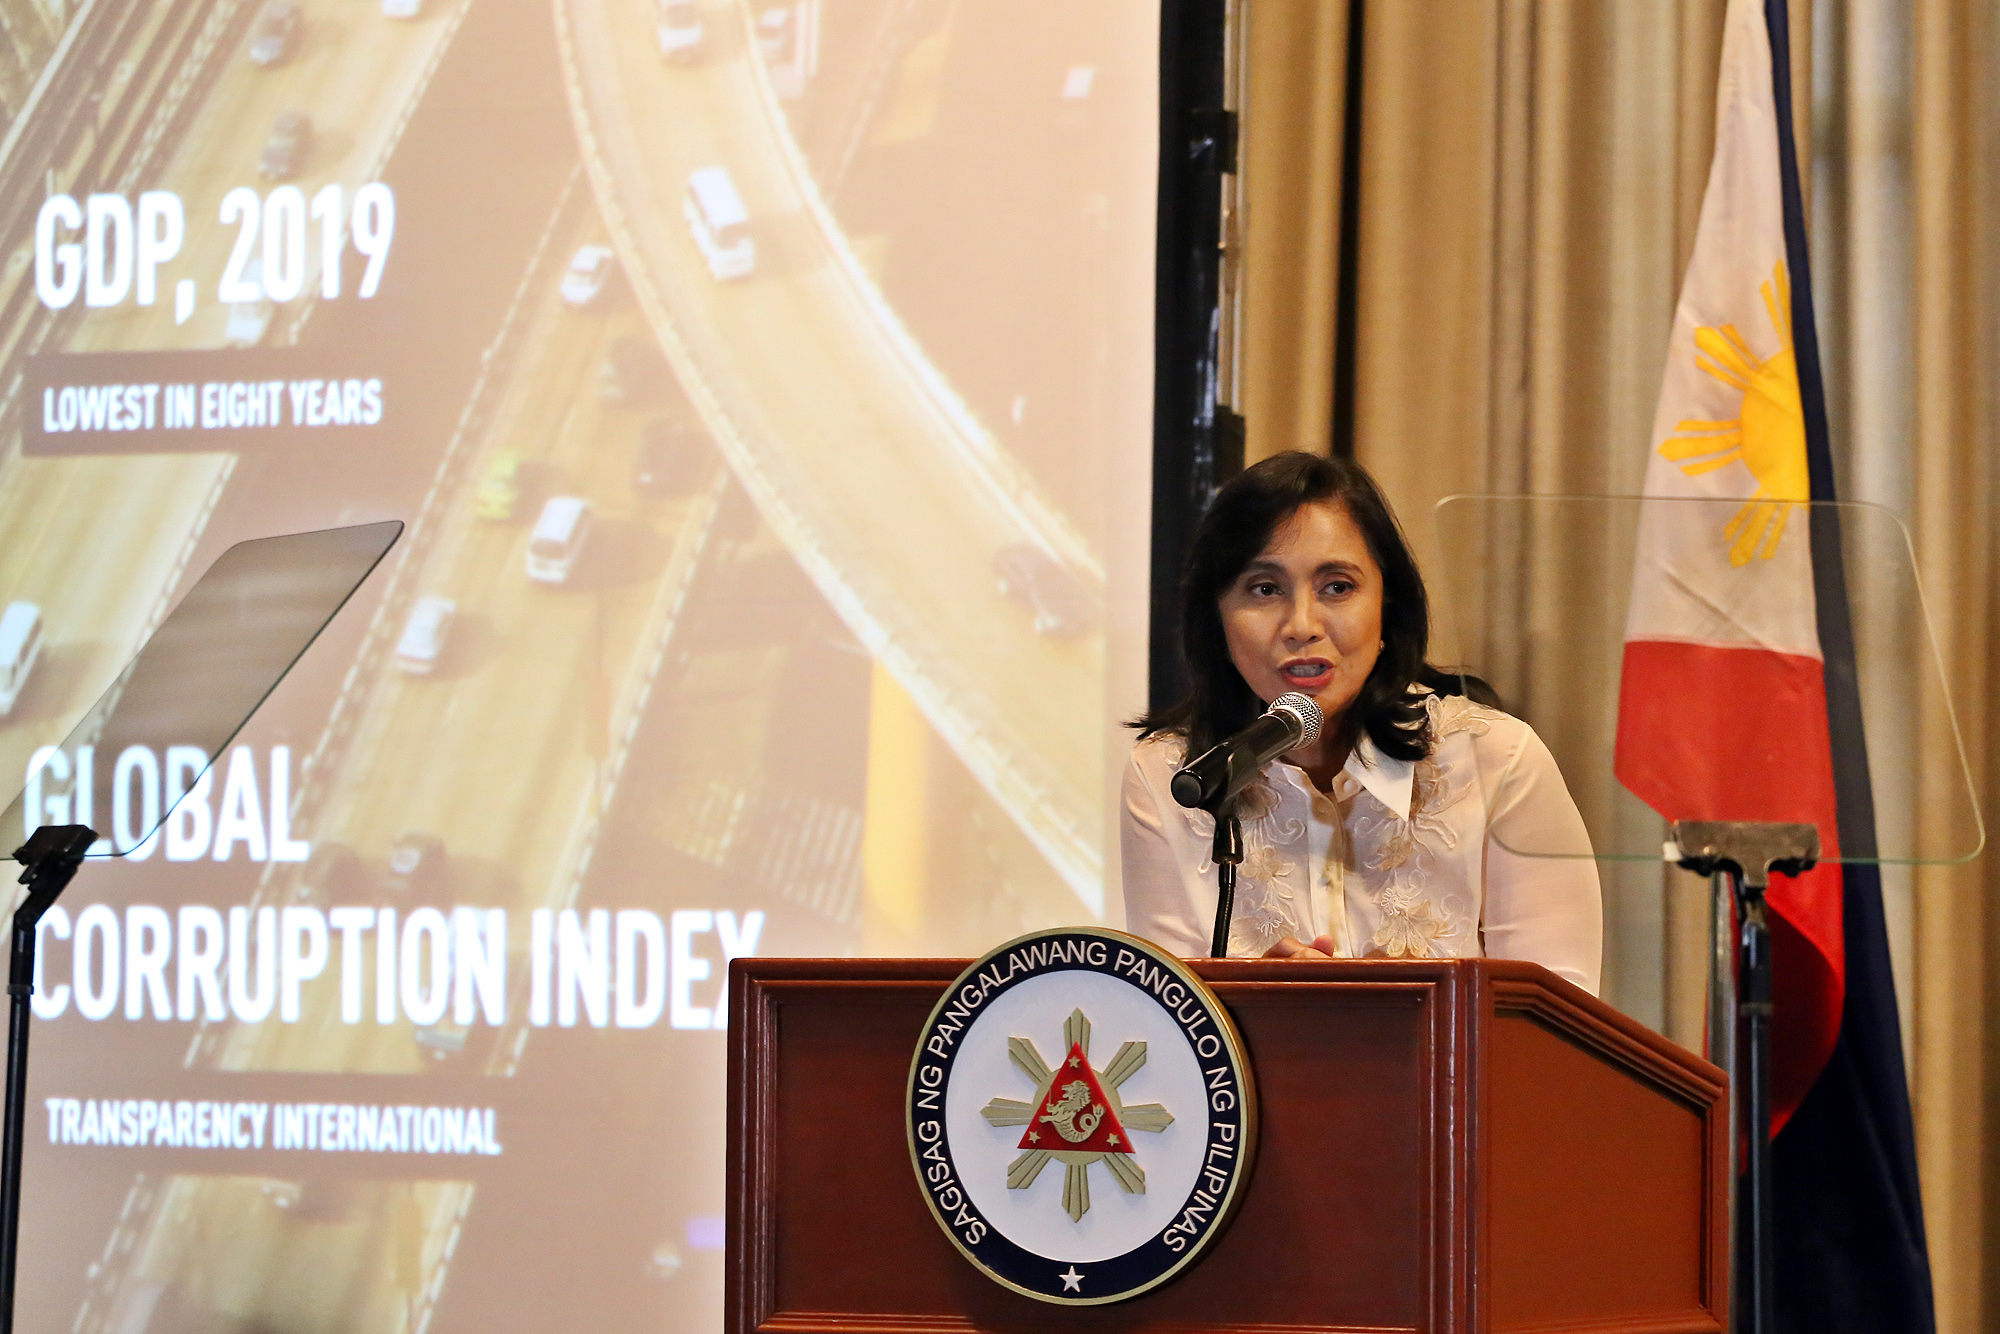 Philippines Vice President Leni Robredo spoke at FOCAP in January 2020.